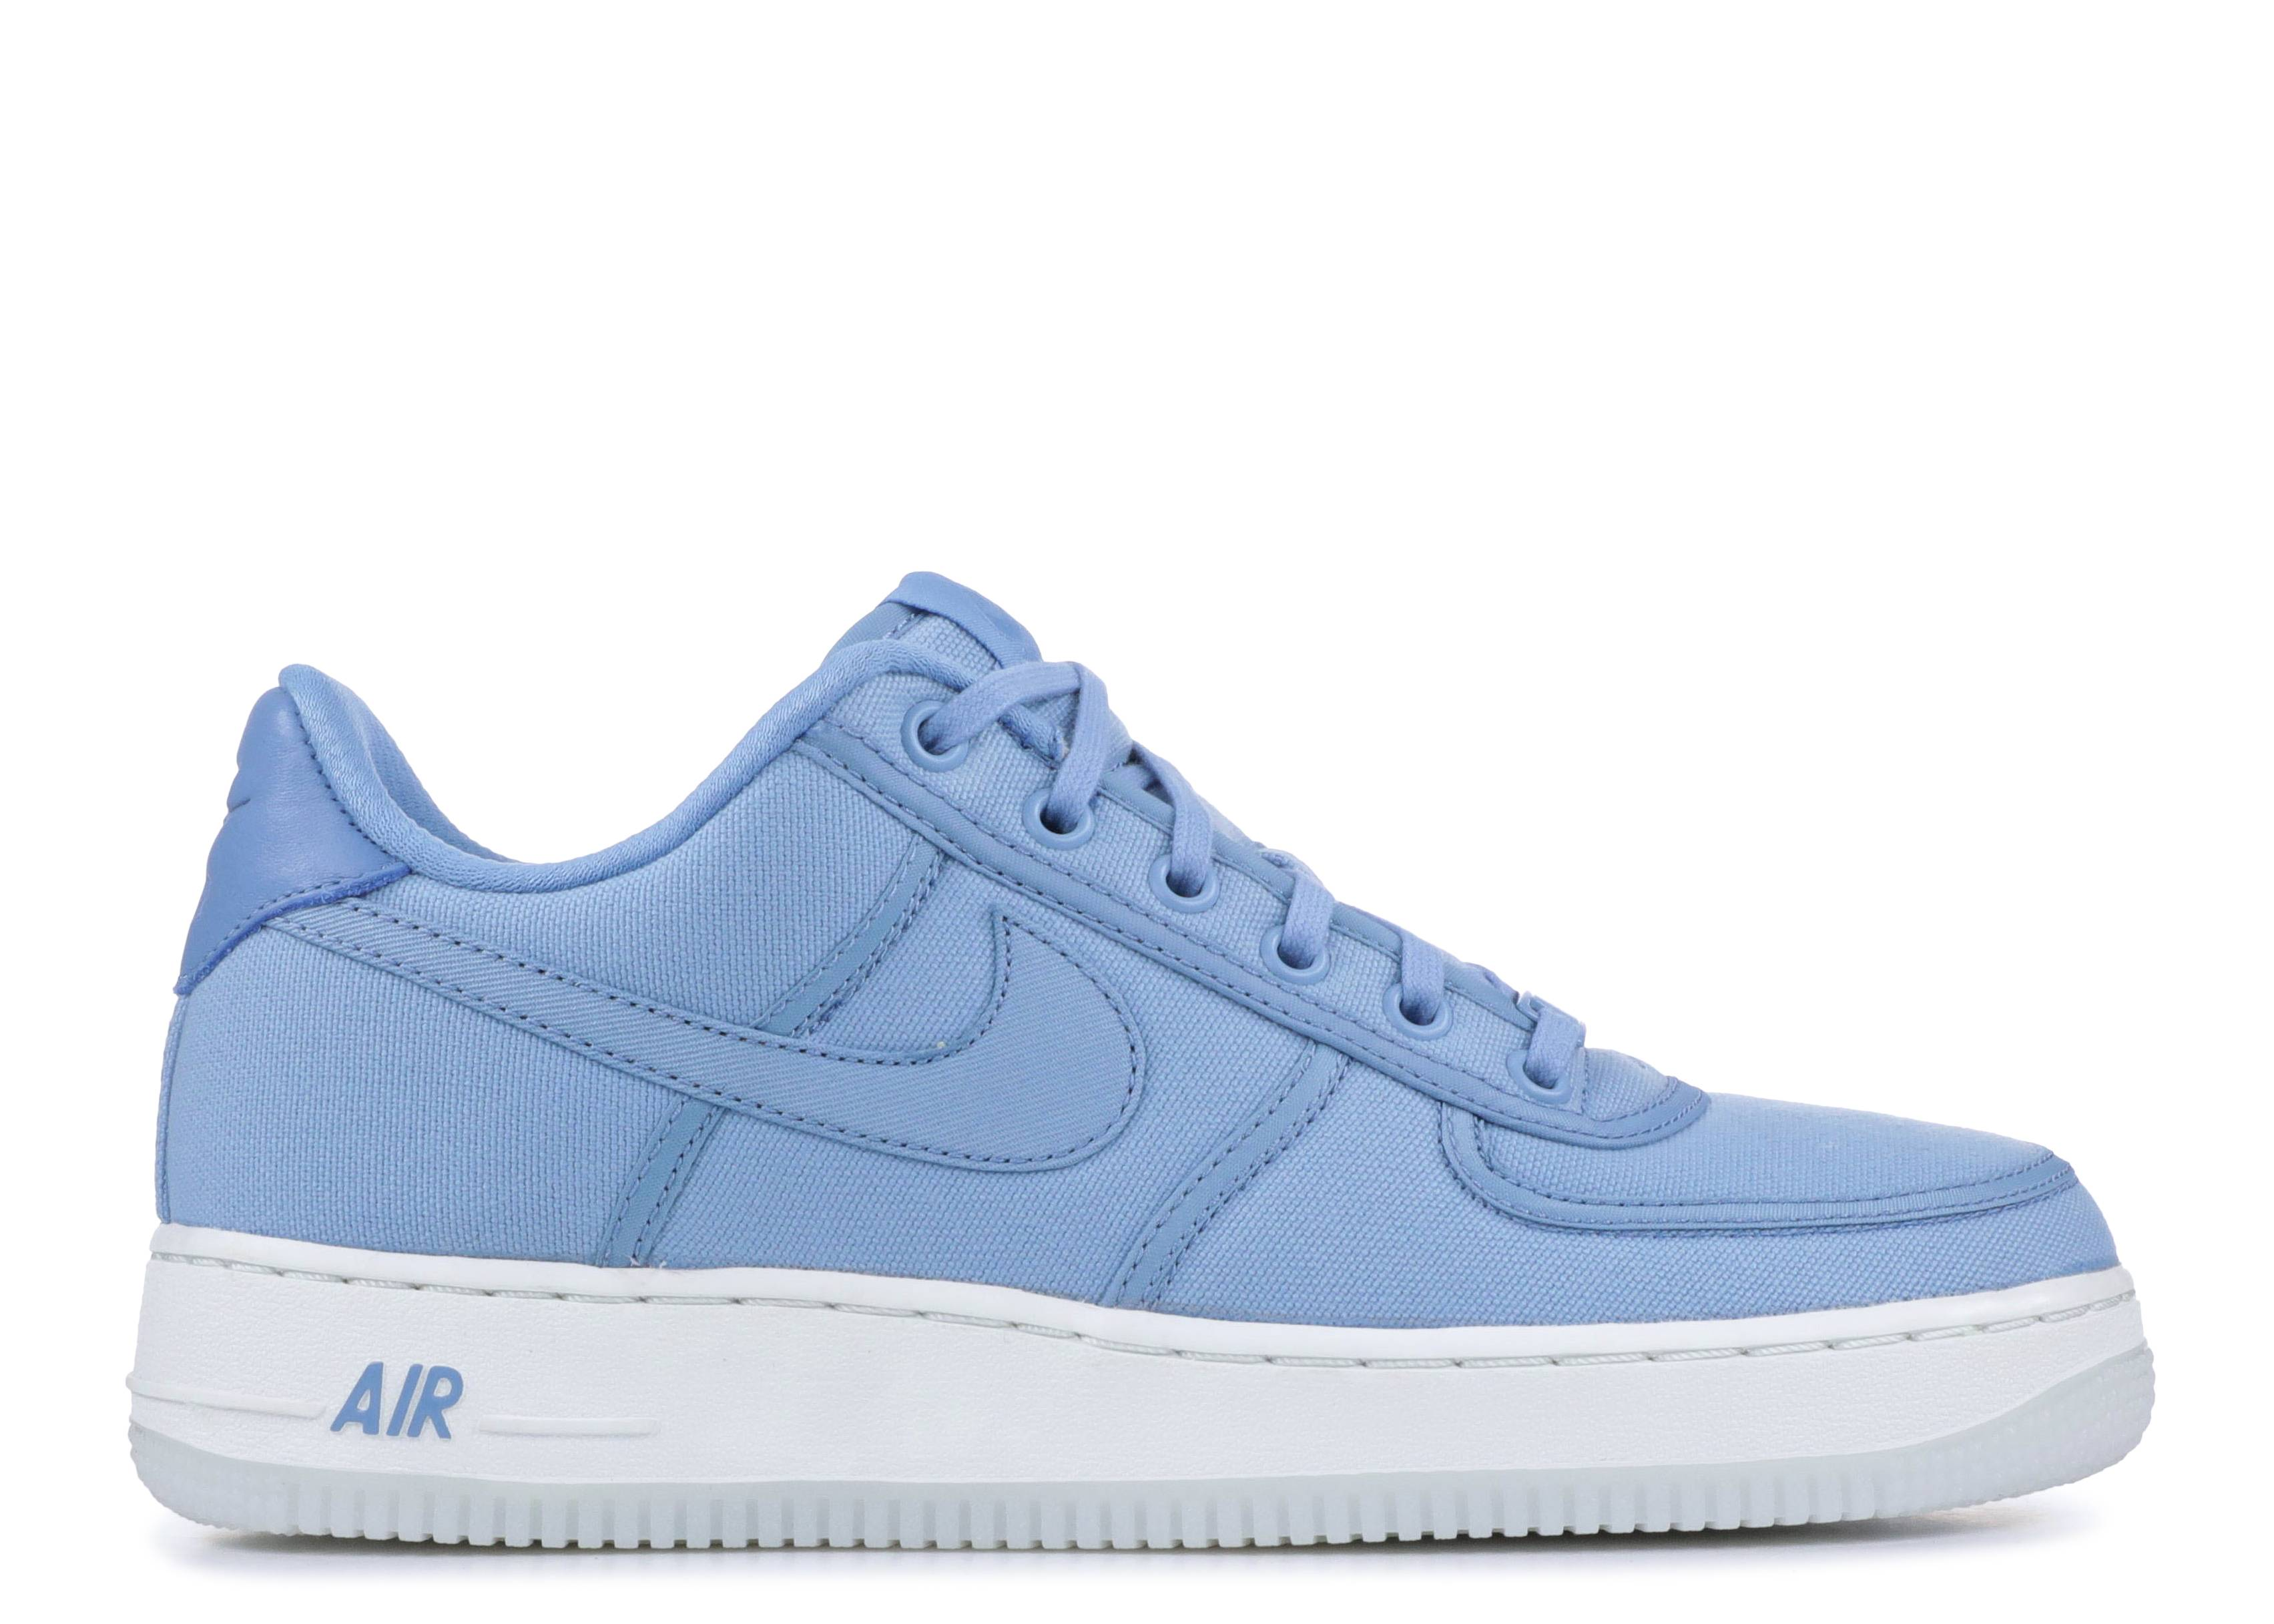 air force 1 low retro qs cnvs